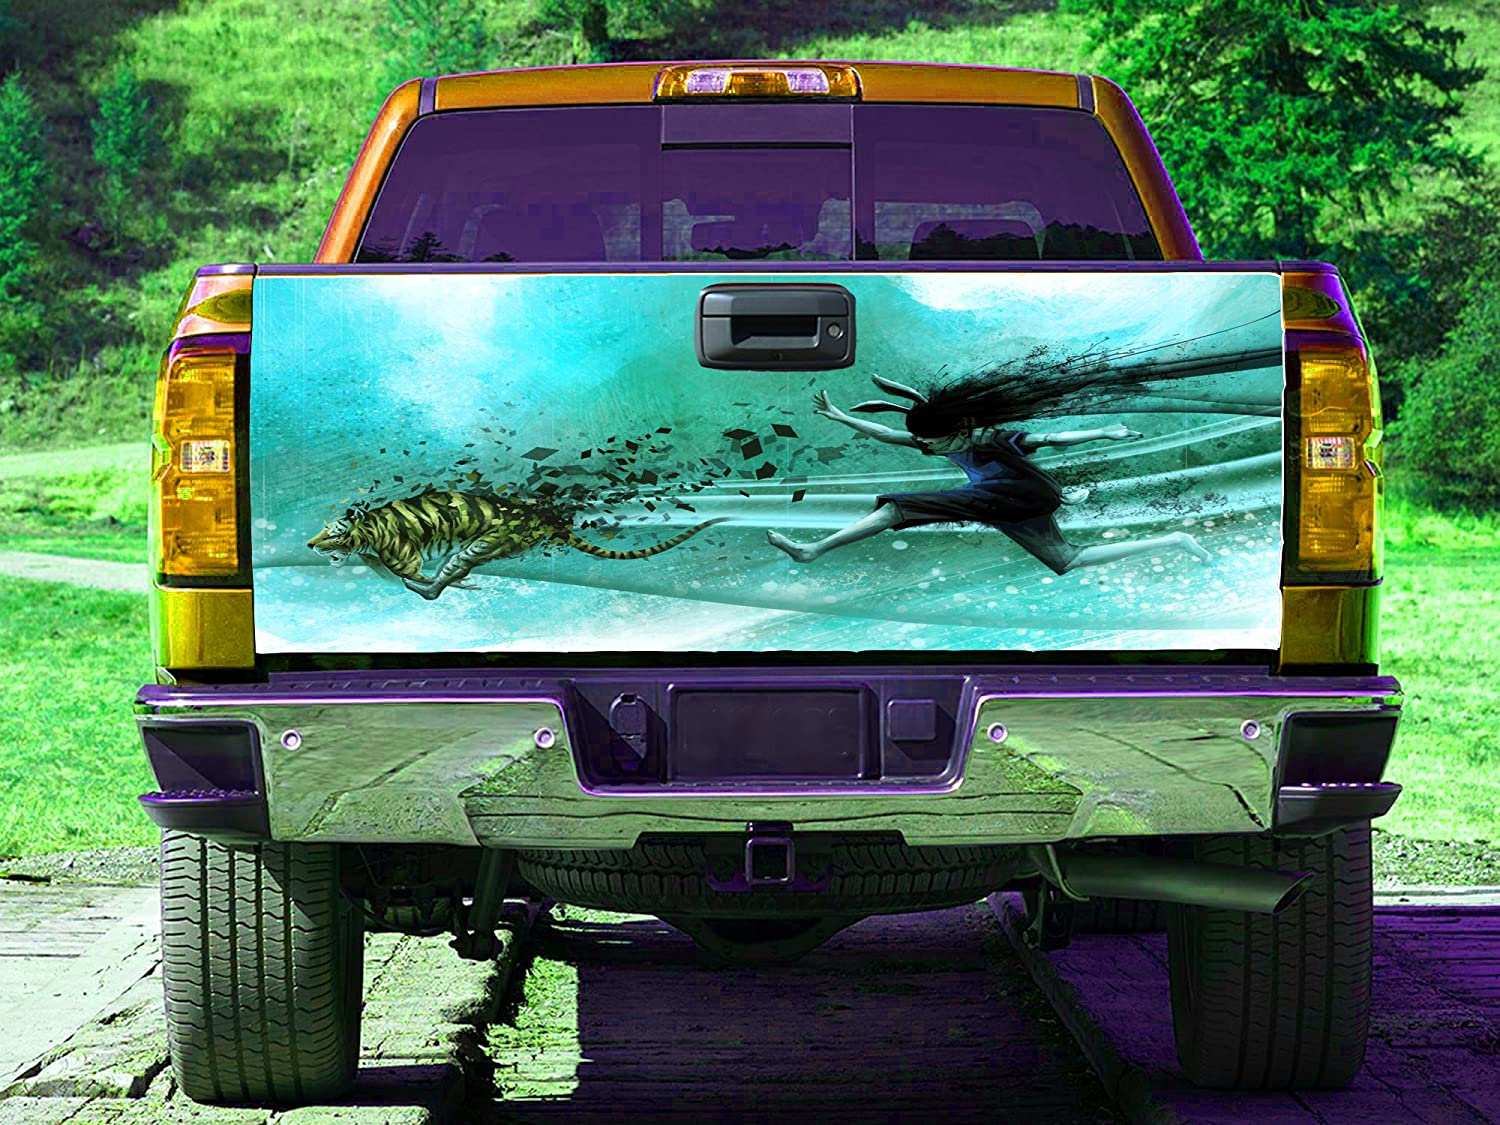 Amazon.com: Anime girl tiger Tailgate Wrap, Truck Decal, Tailgate ...